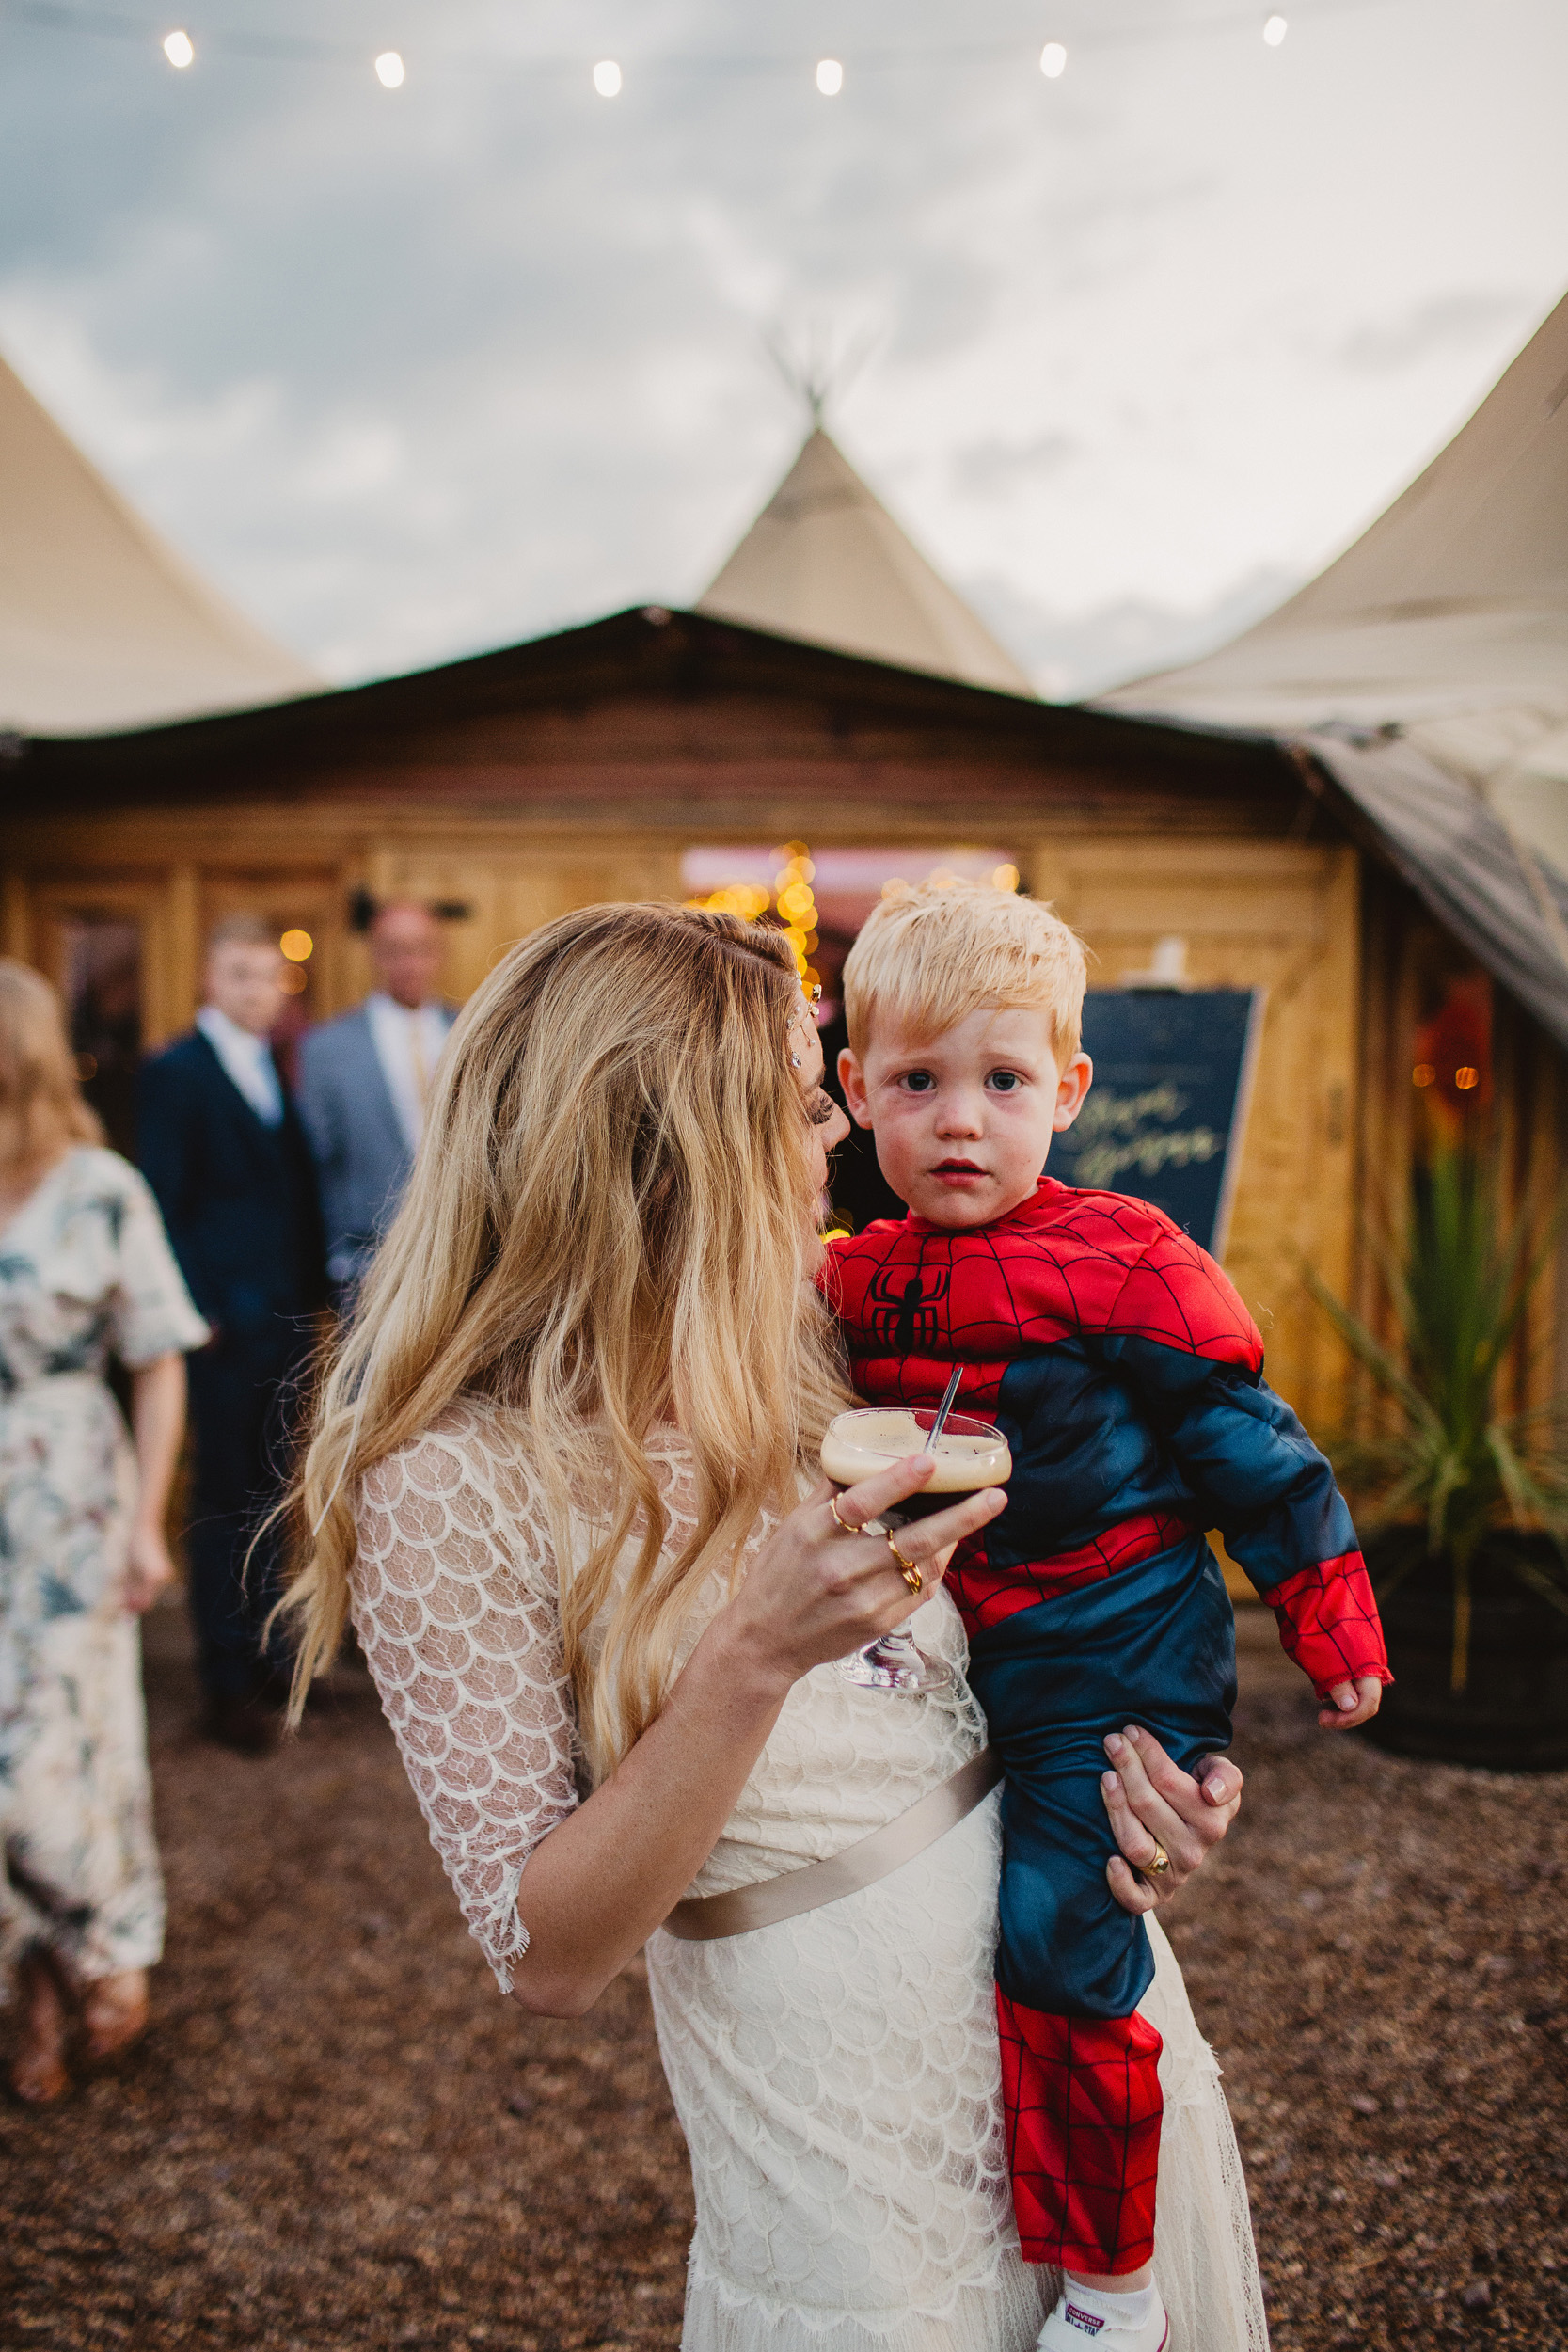 Gemma-Bohemian-Outdoor-Tipi-Wedding-Laid-Back-Relaxed-Family-Wedding-Kate-Beaumont-Astilbe-by-S6-Photography-Sheffield-80.jpg